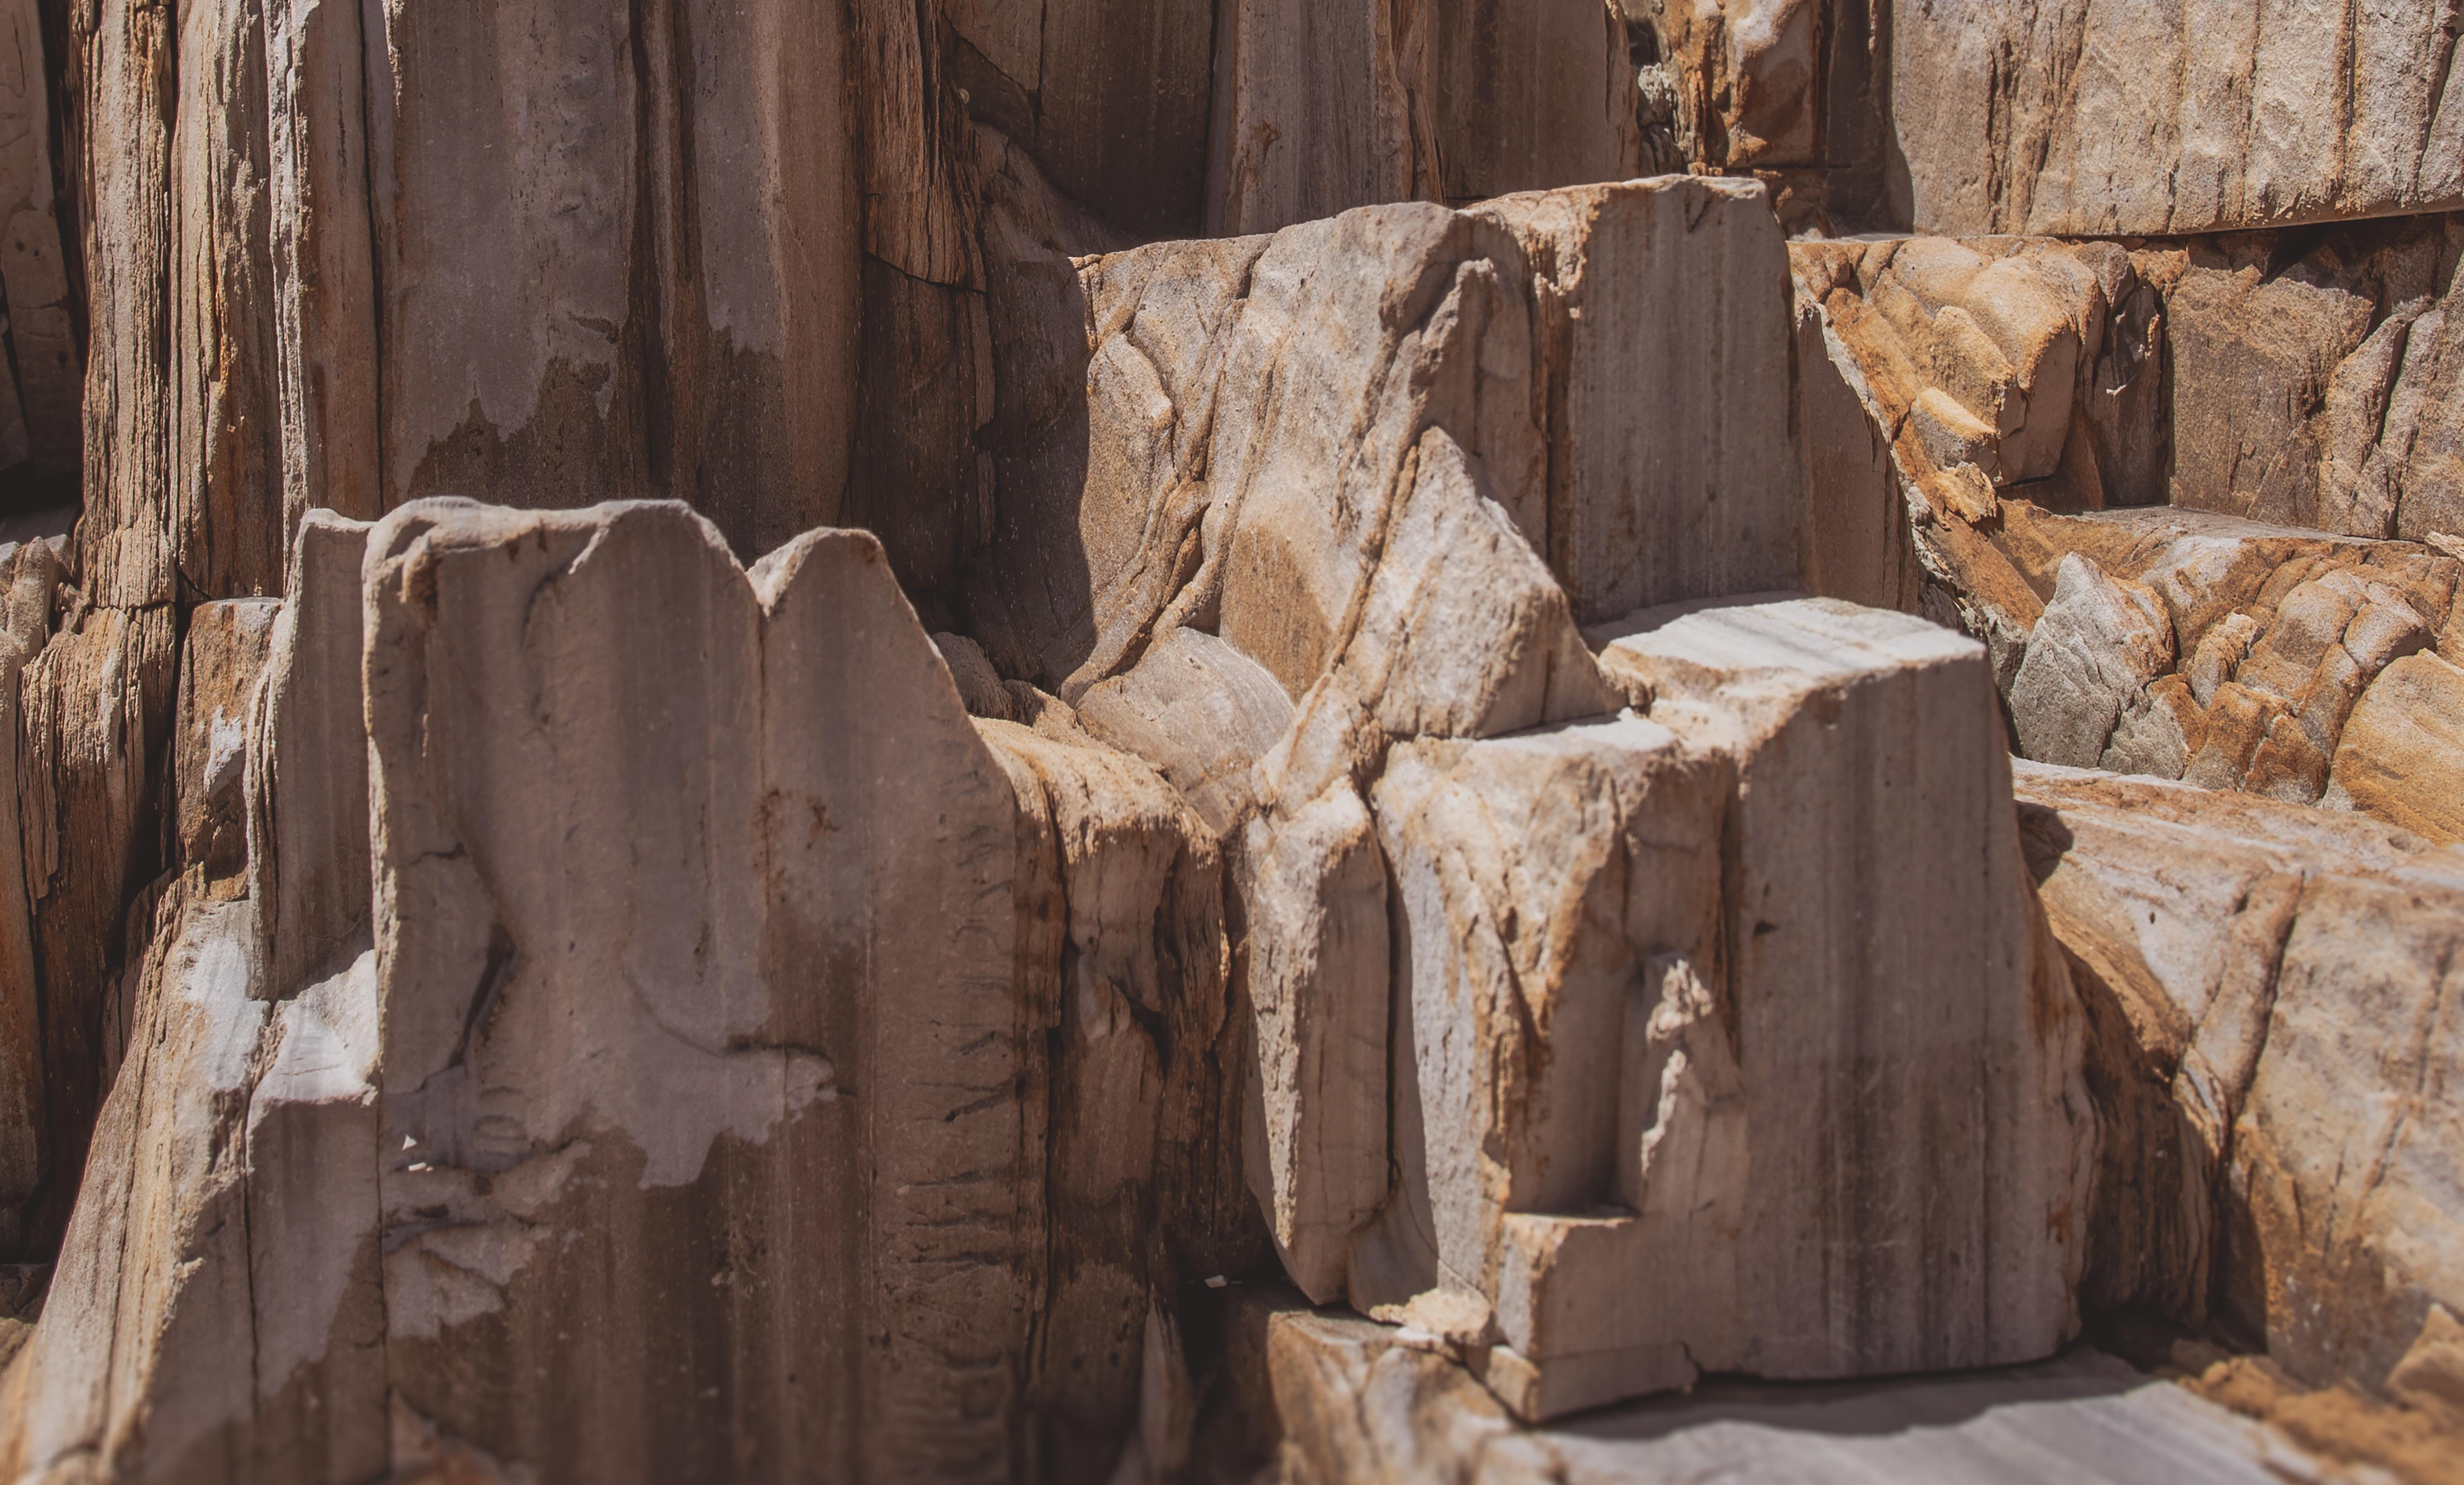 A brown rock formation